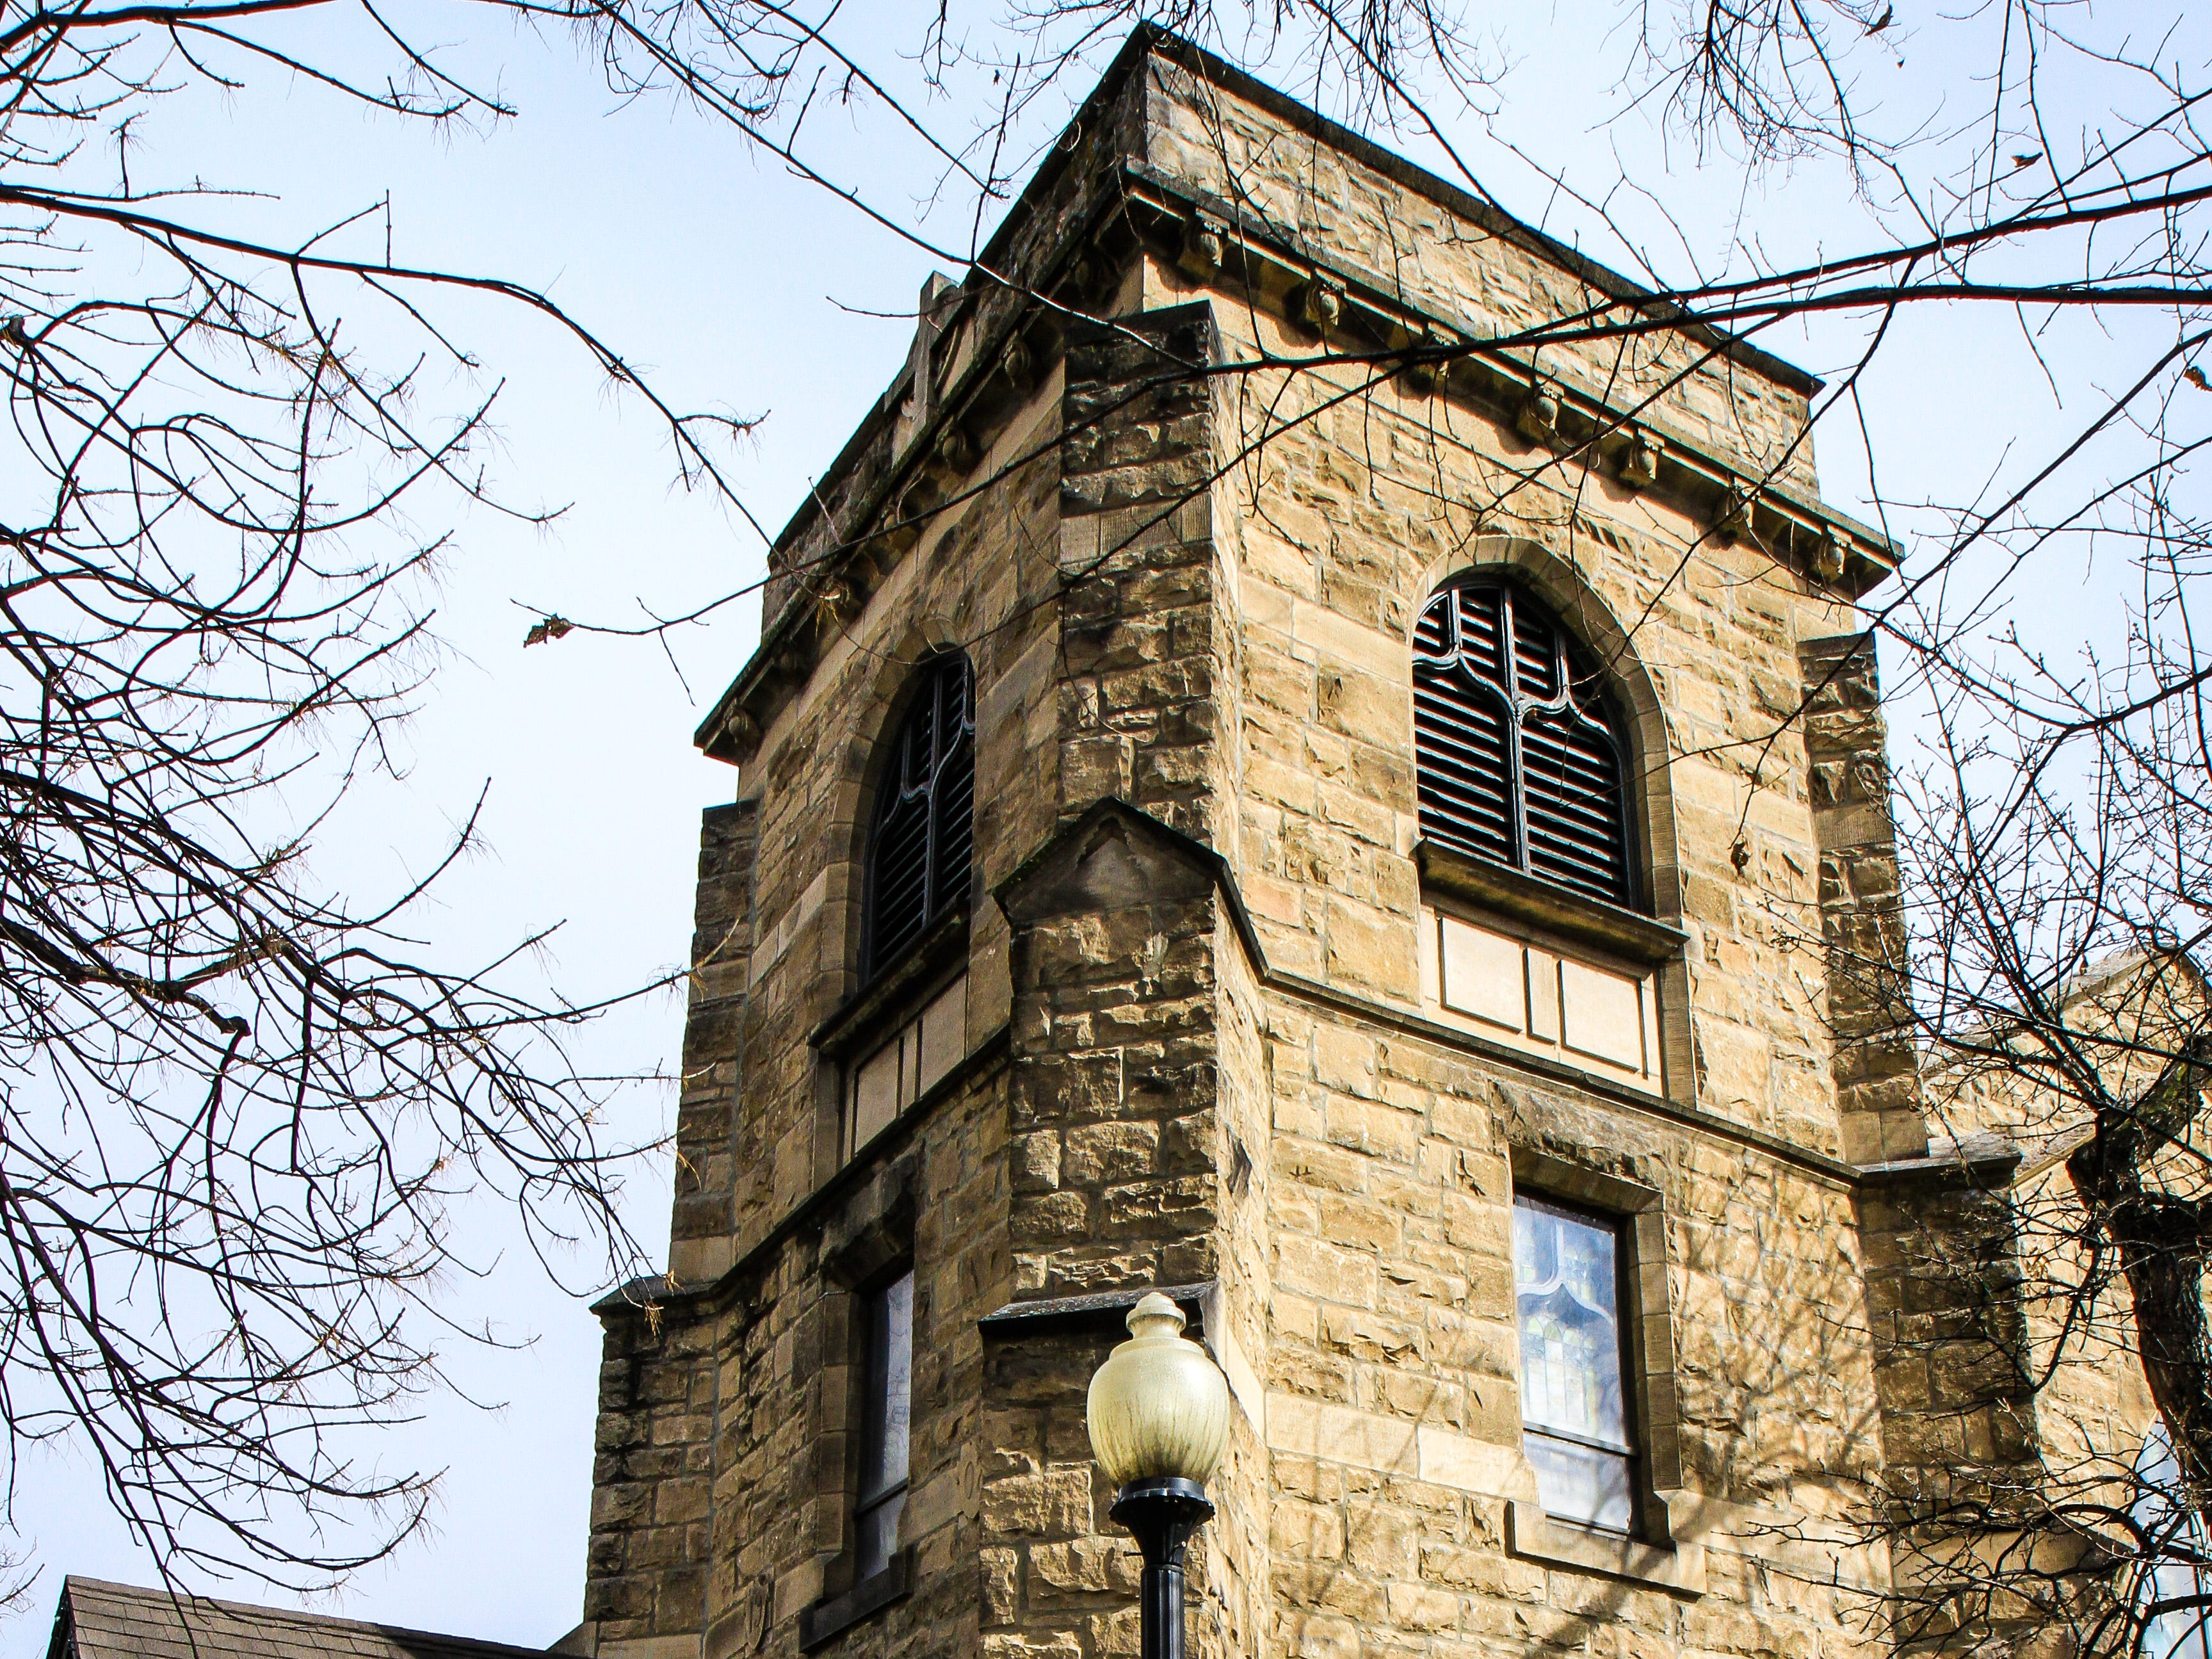 The Church of the Incarnation, a historic Episcopal Church in Great Falls